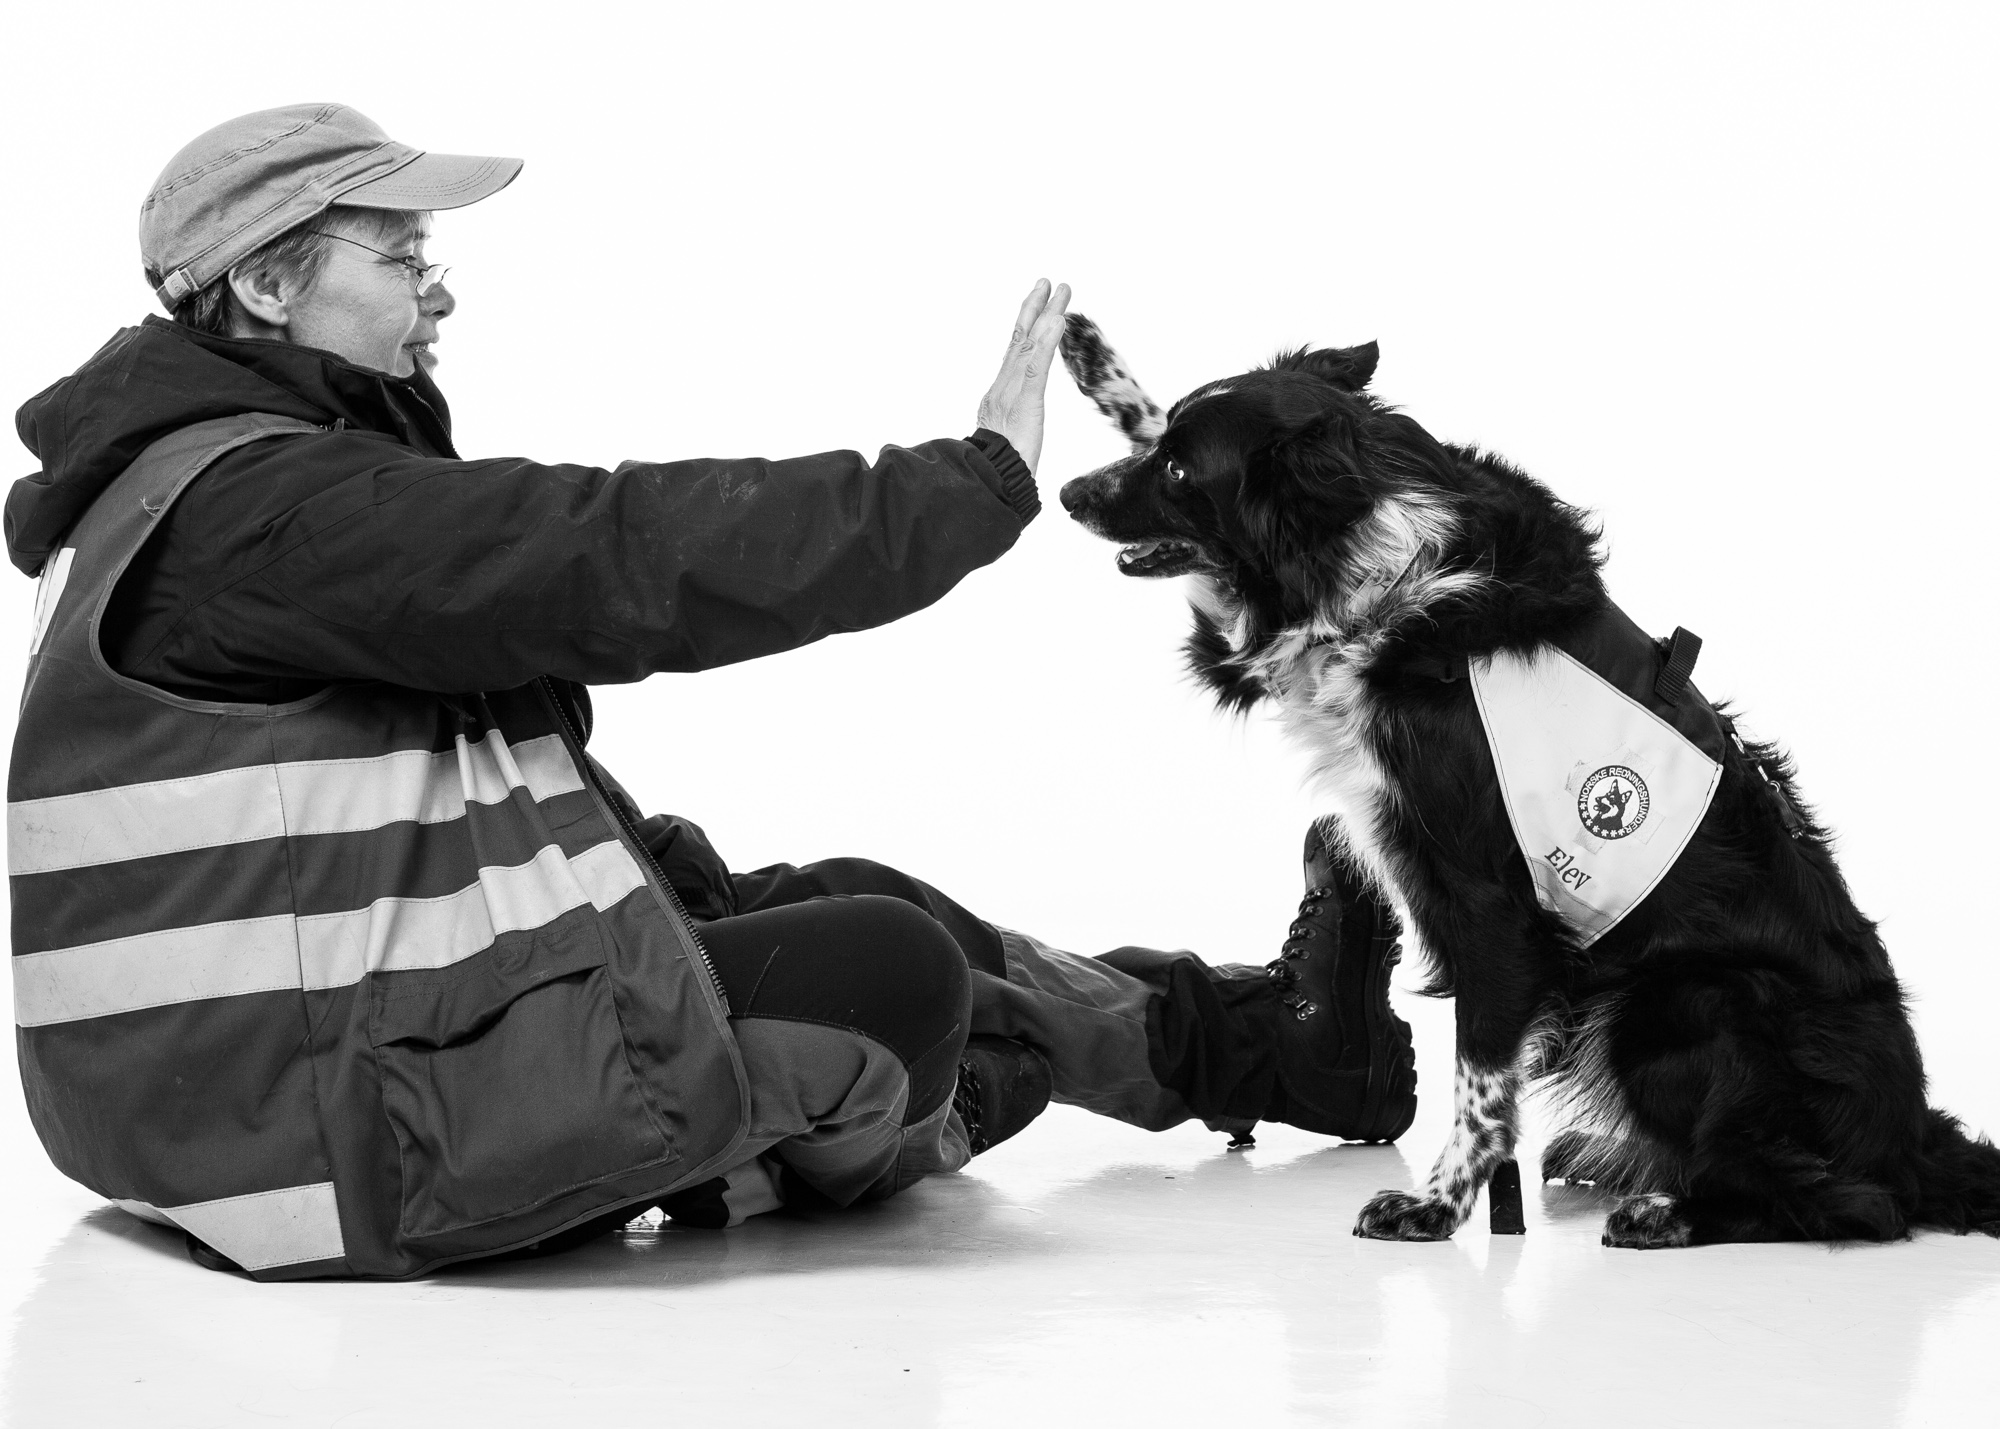 "In recognition of the important work all K-9 SAR teams perform around the world.    - Trude and Essa, training with Norwegian Search and Rescue Dogs (  http://www.norske-redningshunder.no/  )          Normal   0           false   false   false     EN-US   X-NONE   X-NONE                                                                                                                                                                                                                                                                                                                                                                           /* Style Definitions */  table.MsoNormalTable 	{mso-style-name:""Table Normal""; 	mso-tstyle-rowband-size:0; 	mso-tstyle-colband-size:0; 	mso-style-noshow:yes; 	mso-style-priority:99; 	mso-style-parent:""""; 	mso-padding-alt:0in 5.4pt 0in 5.4pt; 	mso-para-margin-top:0in; 	mso-para-margin-right:0in; 	mso-para-margin-bottom:10.0pt; 	mso-para-margin-left:0in; 	line-height:115%; 	mso-pagination:widow-orphan; 	font-size:11.0pt; 	font-family:""Times New Roman"",""serif"";}"